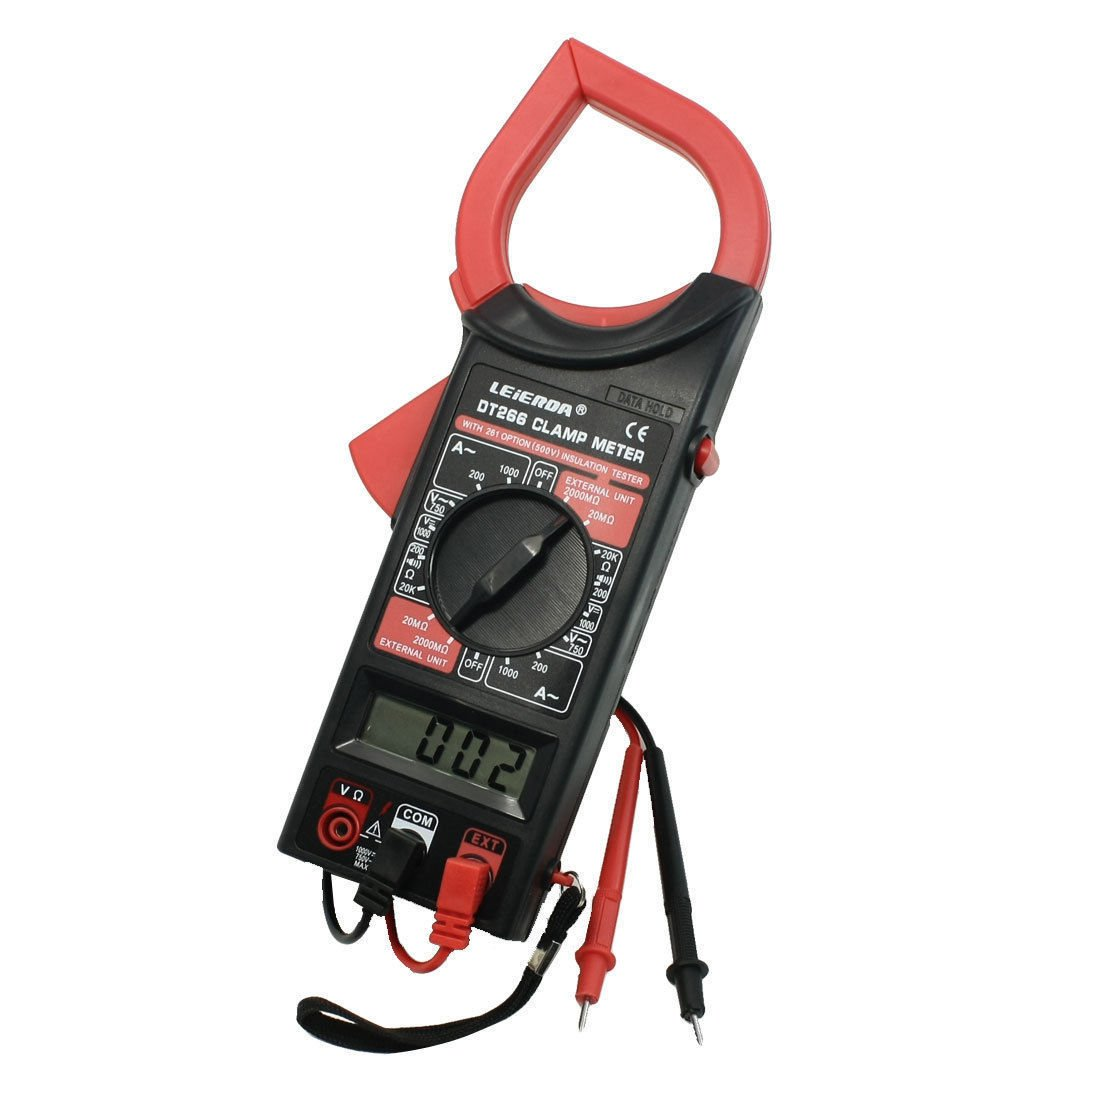 AC/DC Electronic Tester Digital Clamp Meter with Test Probe Leads DT-266